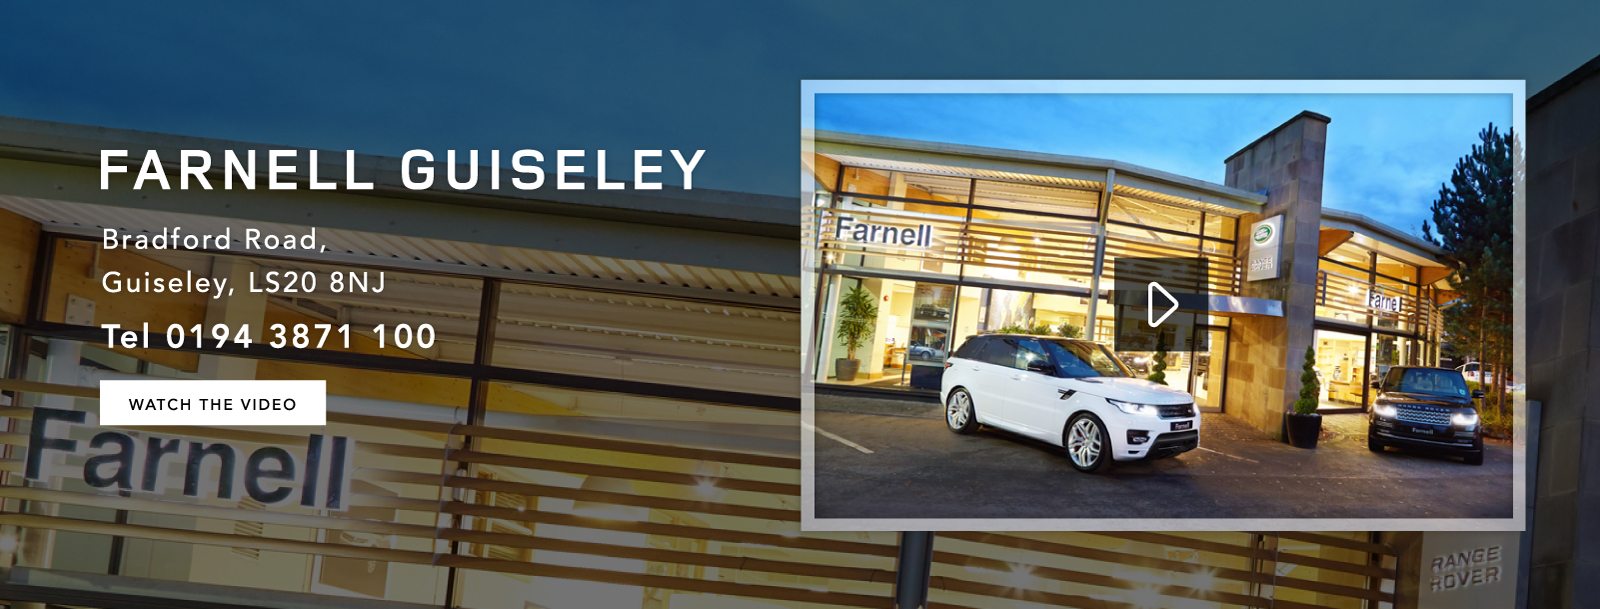 Land Rover Guiseley | New and Used Land Rover Retailers in Guiseley